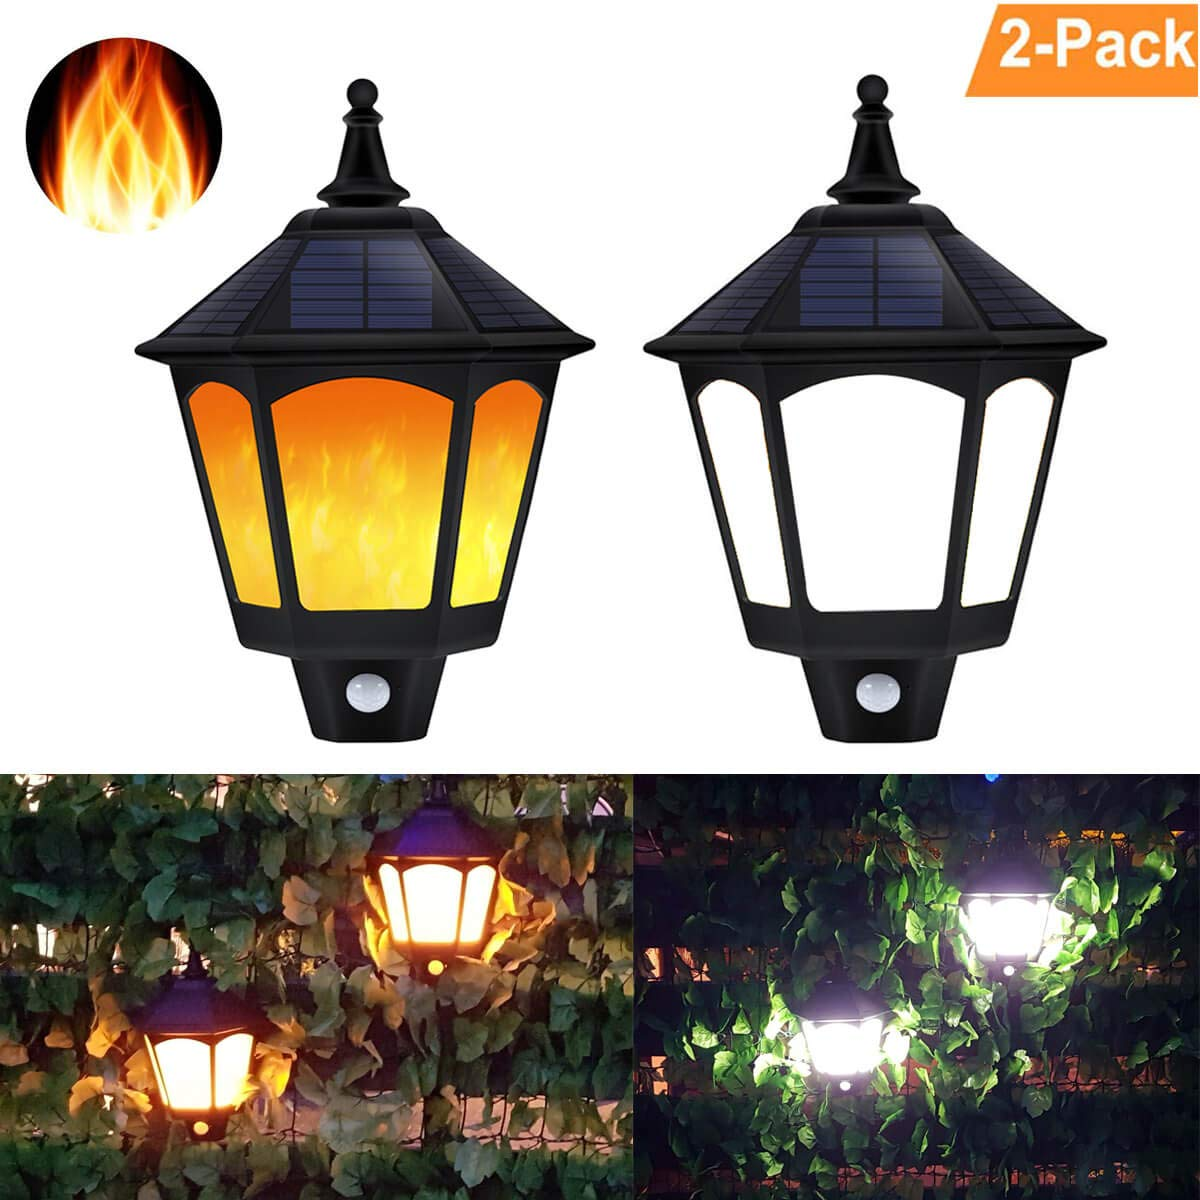 Solar Flame Lights Outdoor, ALOVECO 2 in 1 Motion Sensor Solar Wall Sconce, Waterproof Flickering Flames Lantern, 87 LEDs Auto On/Off Solar Security Lights Outside Decorative for Garden Fence Porch(2)